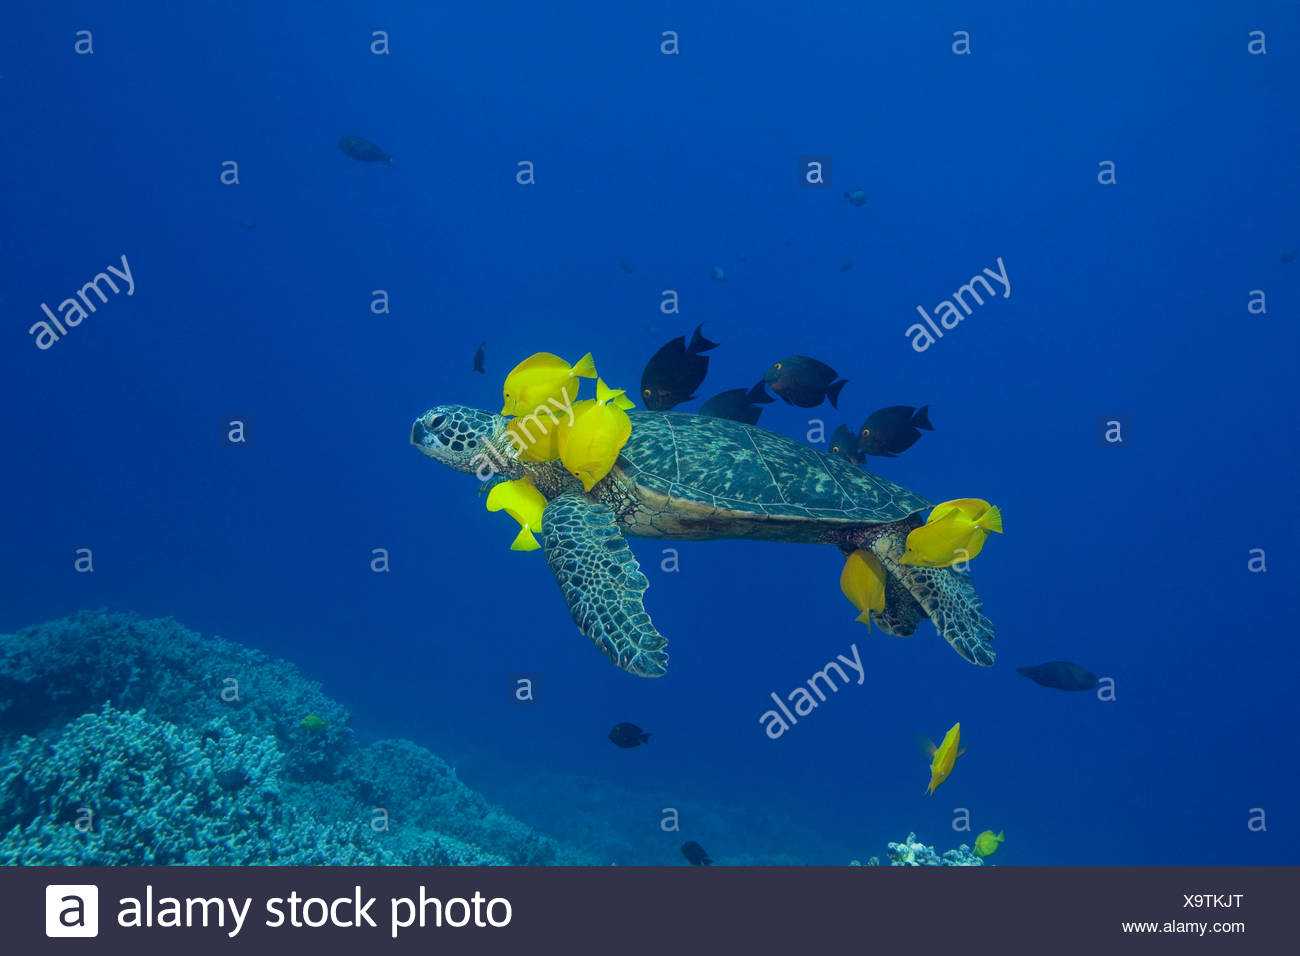 Green sea turtle (Chelonia mydas) being cleaned by herbivorous cleaner fish species Yellow tangs (Zebrasoma flavescens) and Gold-ring surgeonfish (Ctenochaetus strigosus) that graze algae on turtle's shell, at cleaning station, Kona, Hawaii. - Stock Image